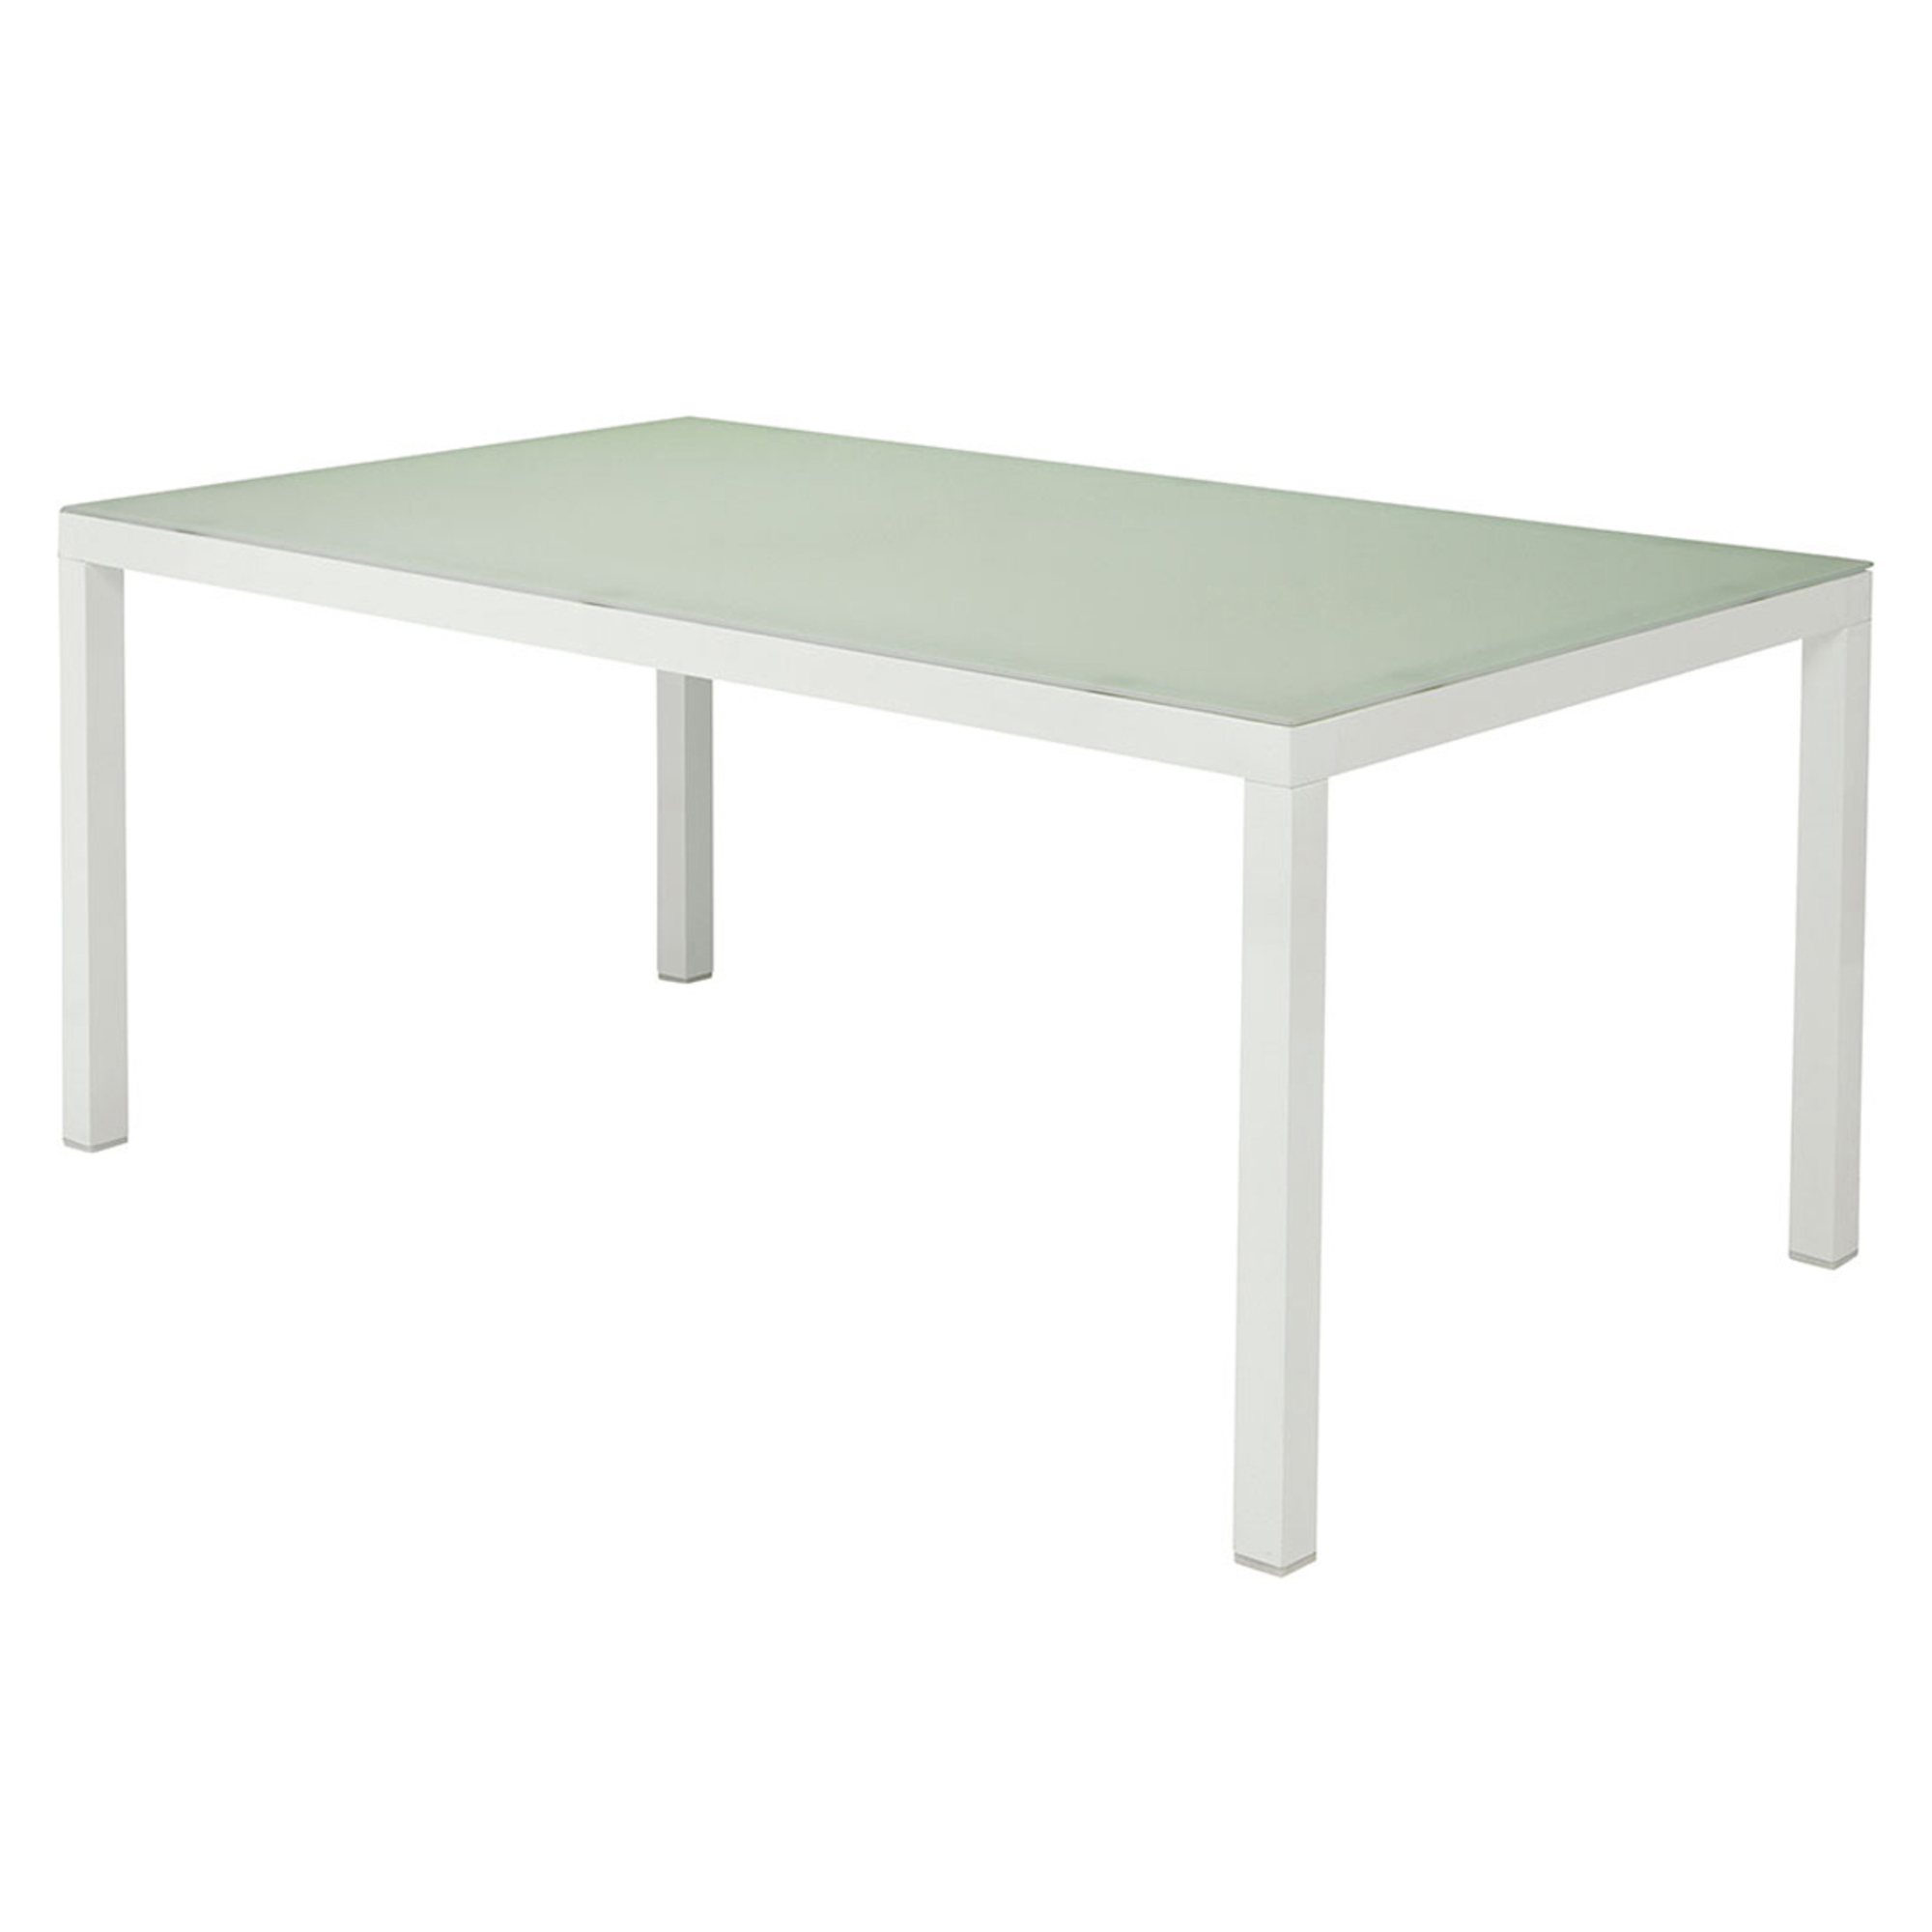 Table verre trempe - Verre trempe pour table ...